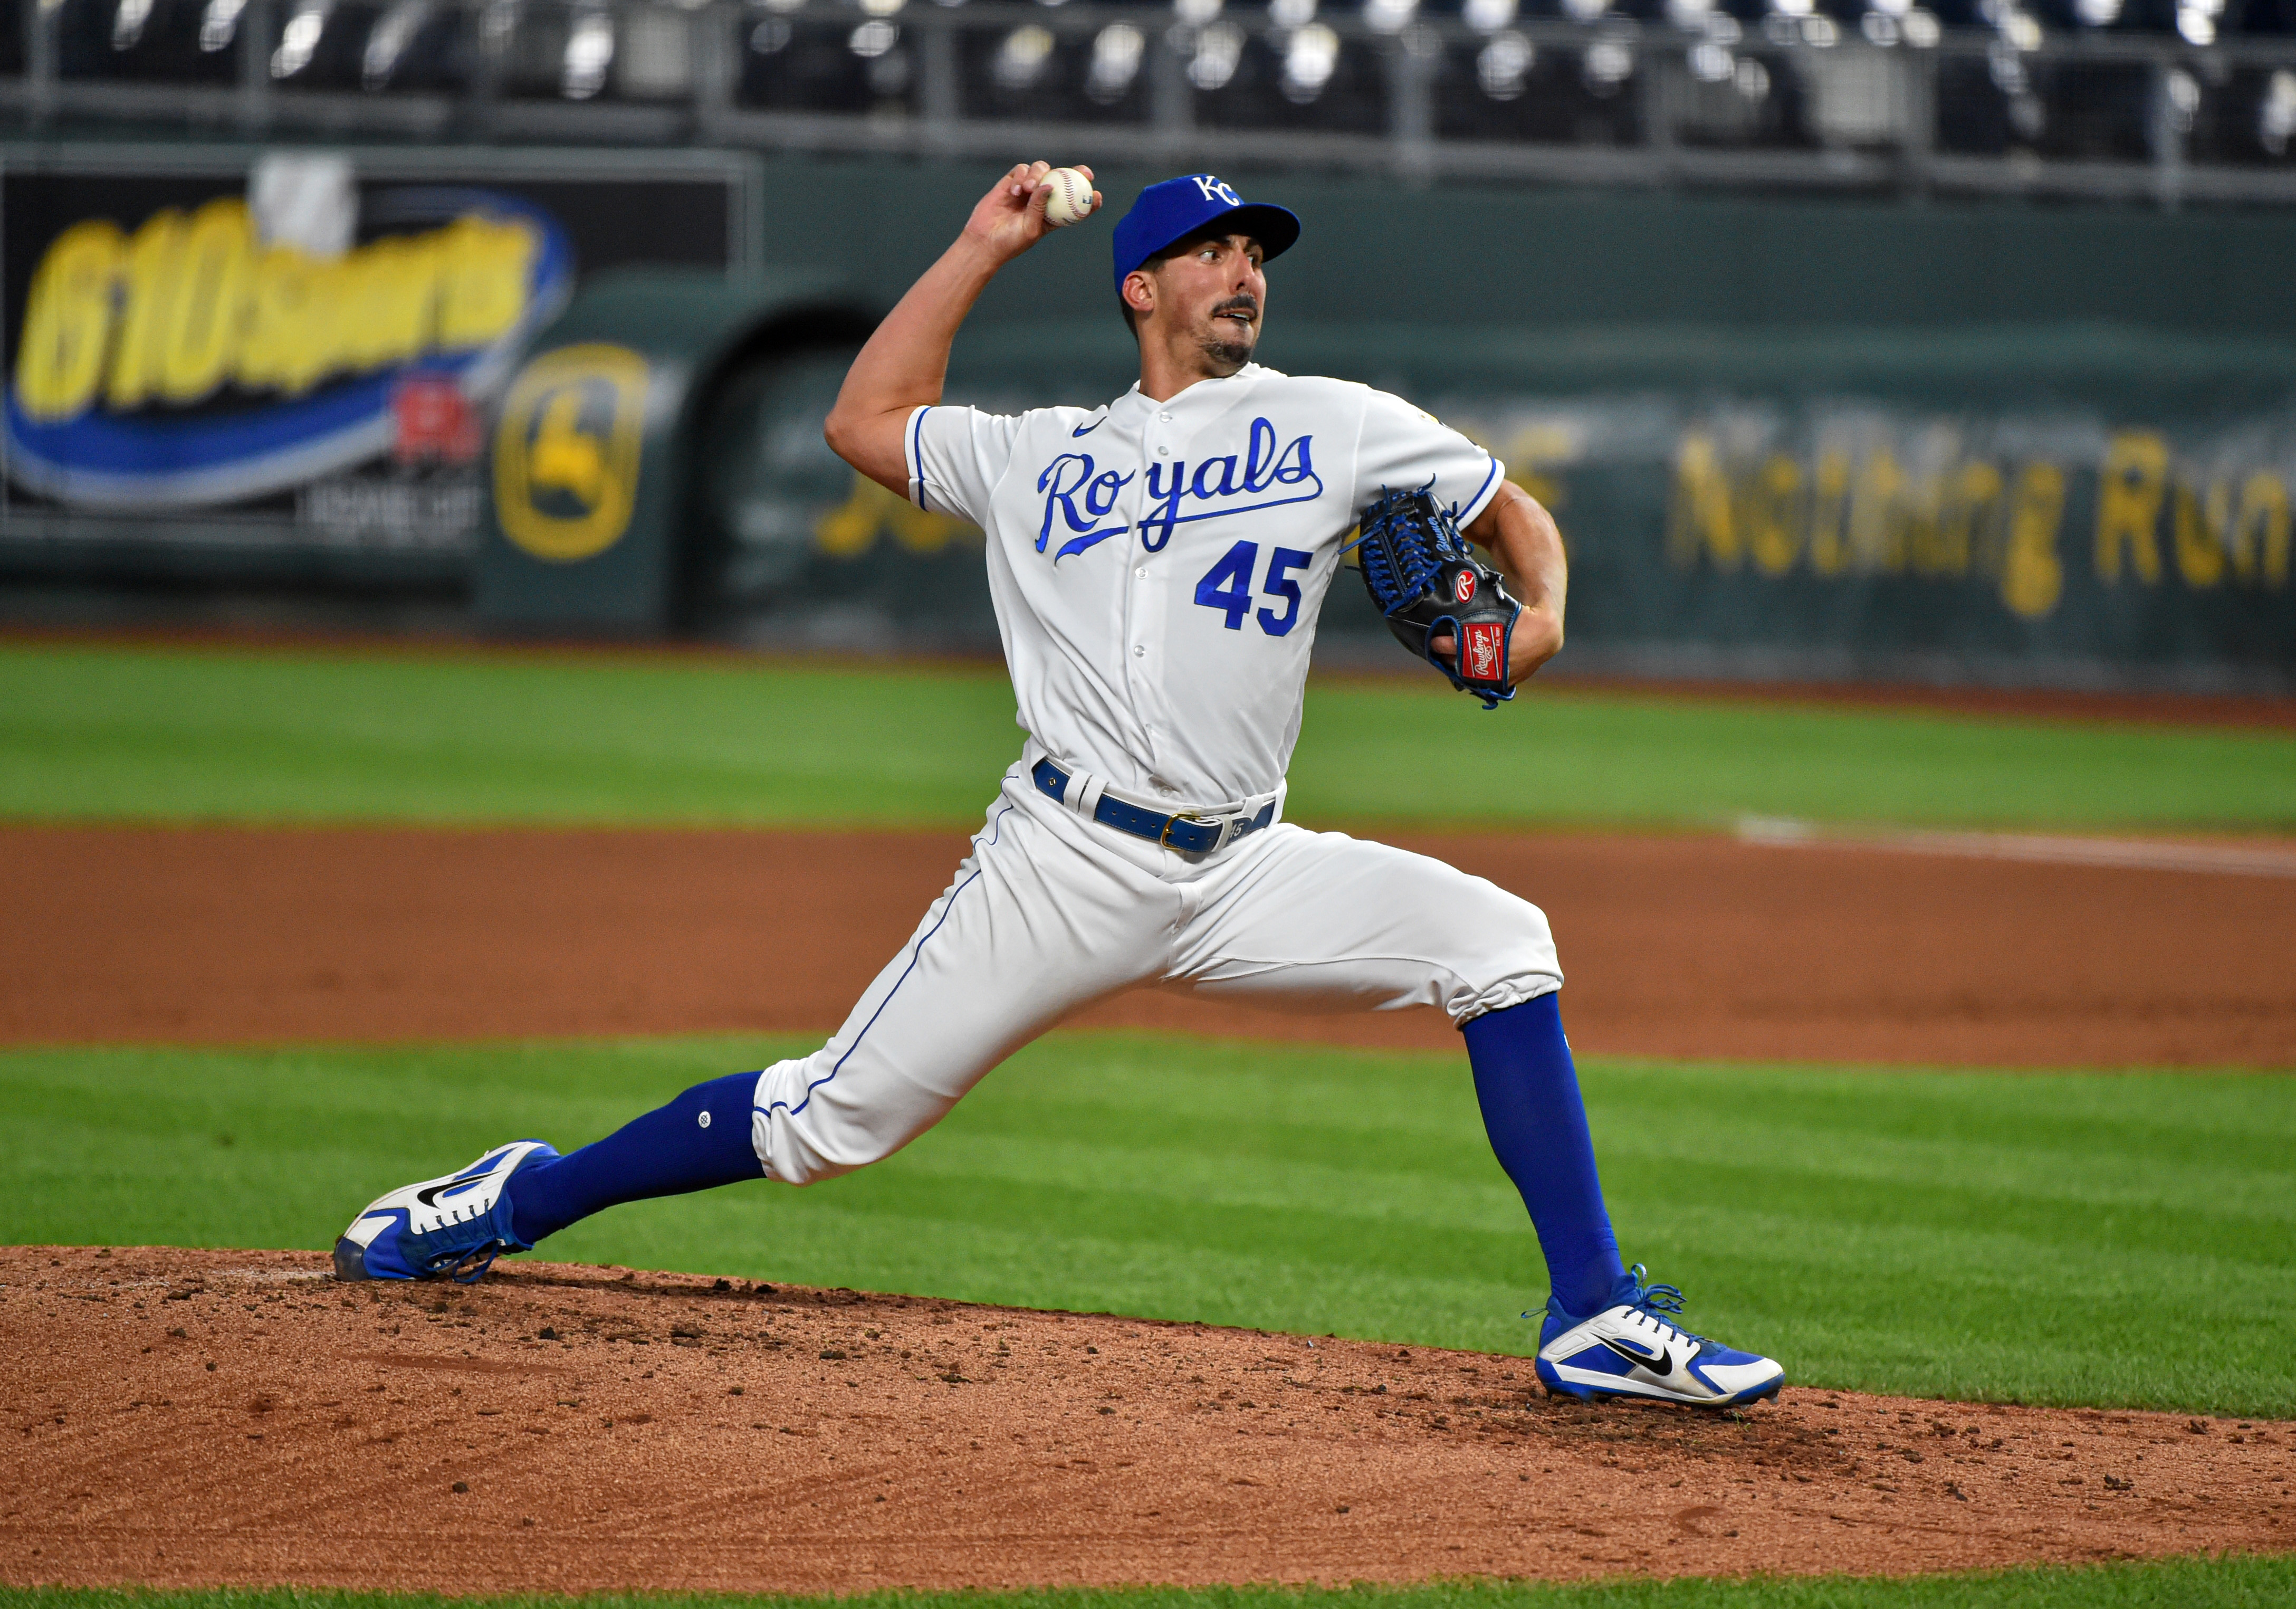 Relief pitcher Kyle Zimmer #45 of the Kansas City Royals throws in the fifth inning against the Cleveland Indians at Kauffman Stadium on September 02, 2020 in Kansas City, Missouri.